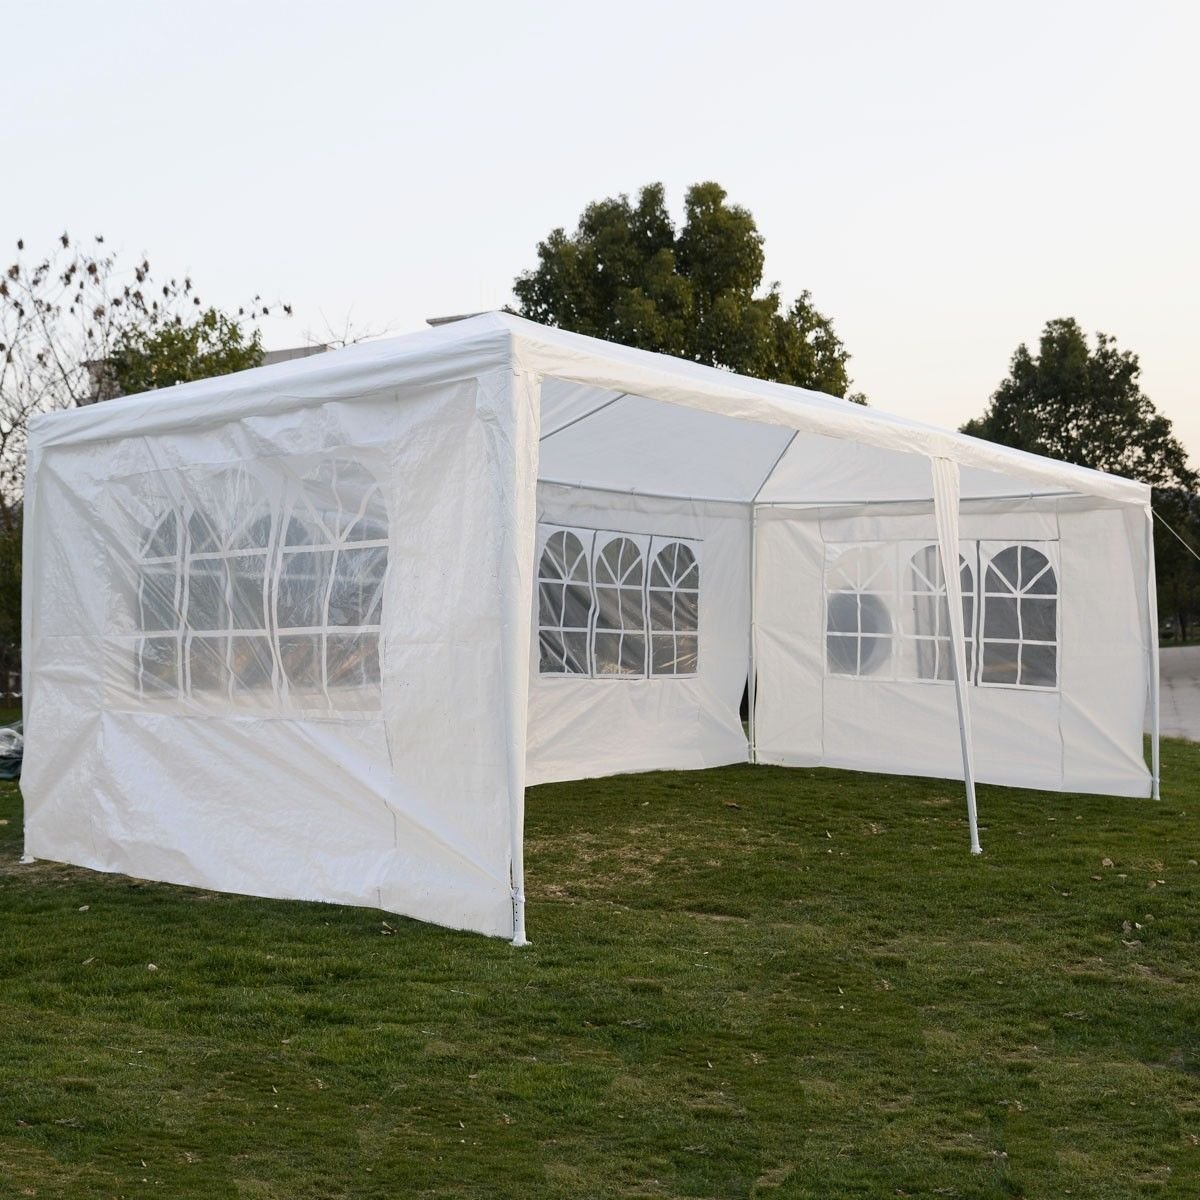 Amazon.com  10u0027x20u0027Canopy Party Wedding Tent Heavy duty Gazebo Pavilion Cater Events  Sports u0026 Outdoors : tents for outdoor events - memphite.com